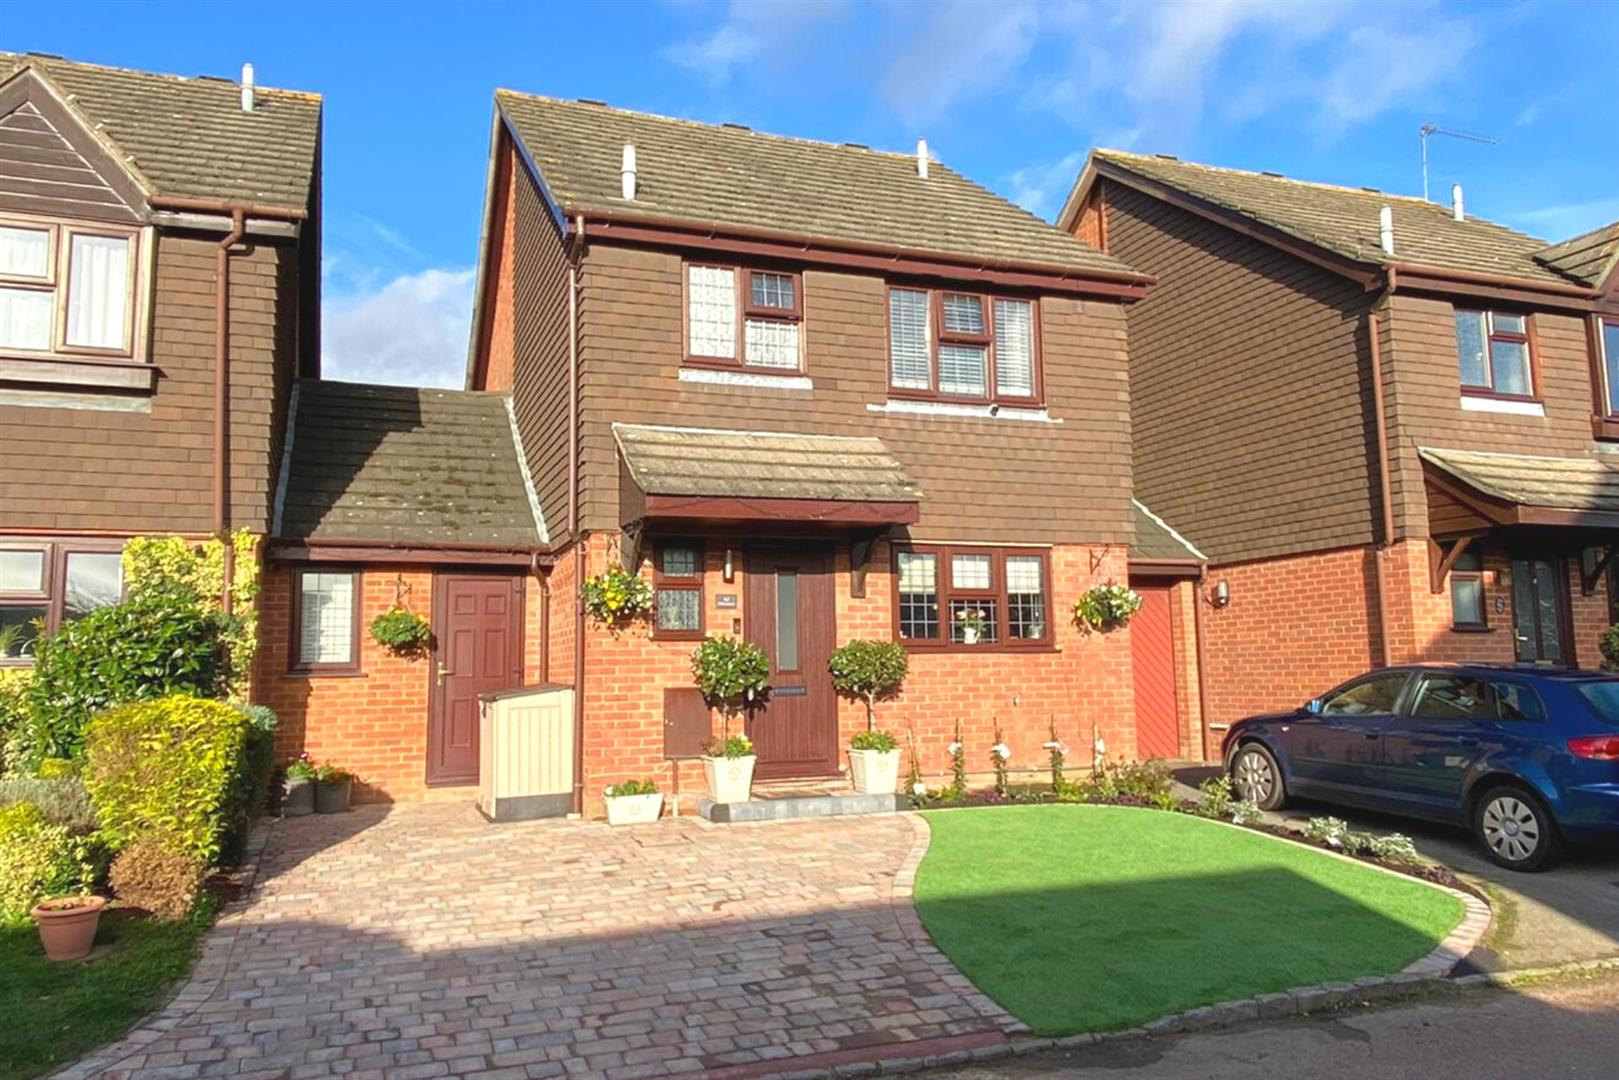 4 bed link detached house to rent in Lower Earley - Property Image 1